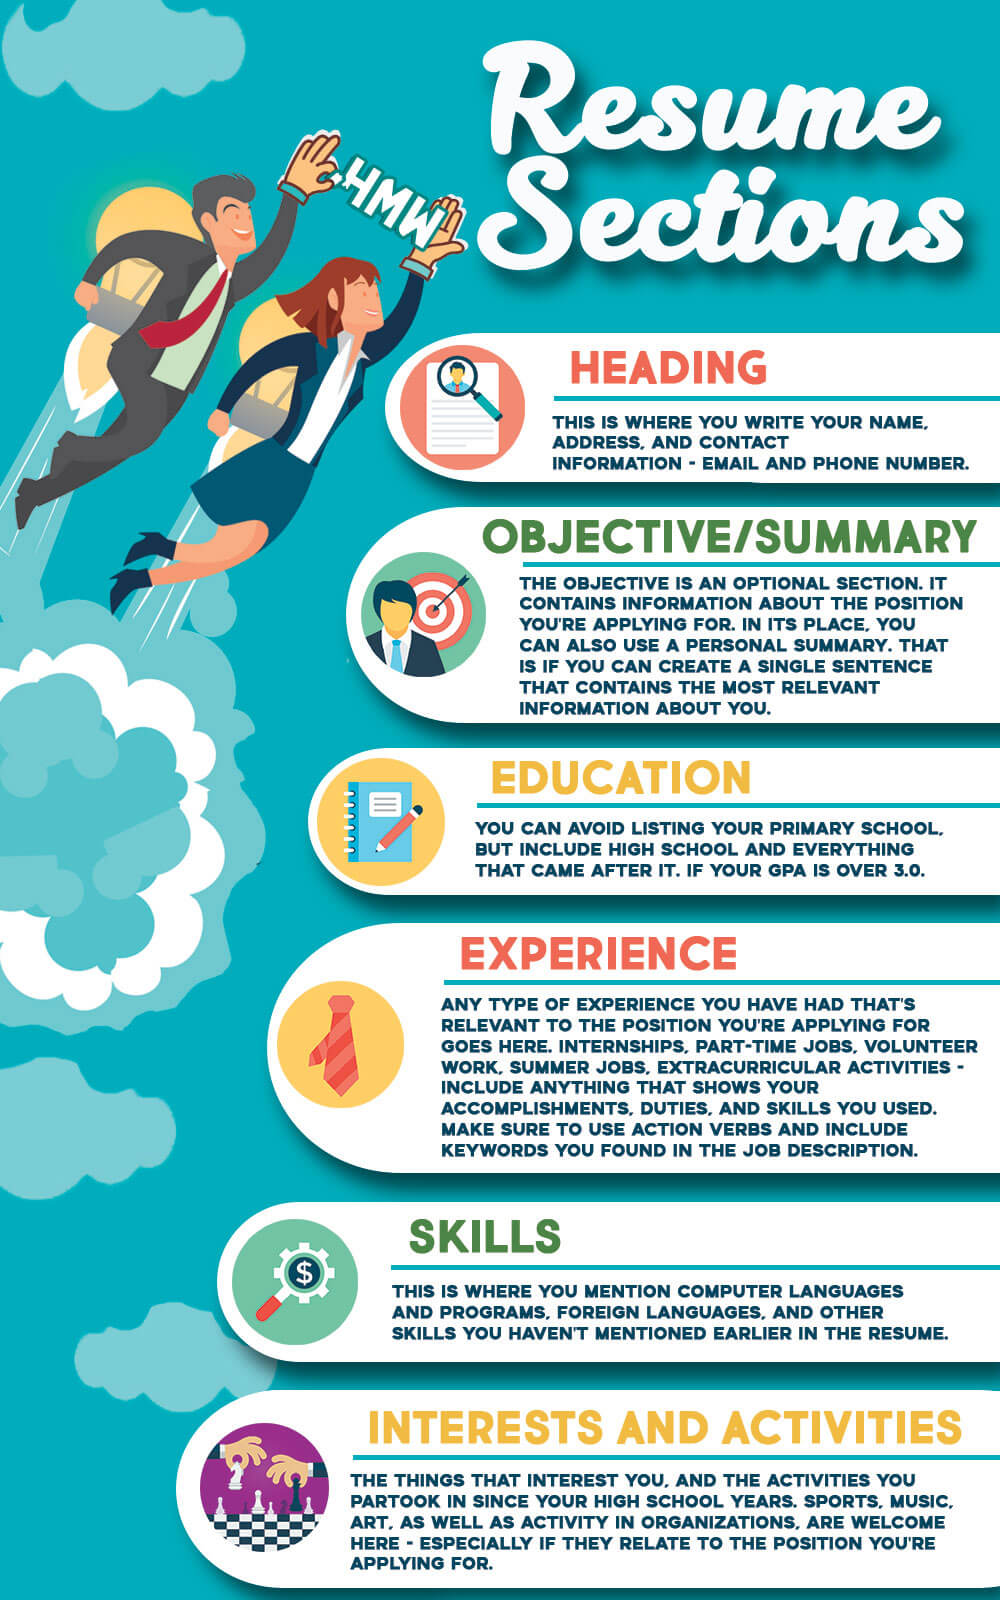 Resume Sections by HandMadeWriting